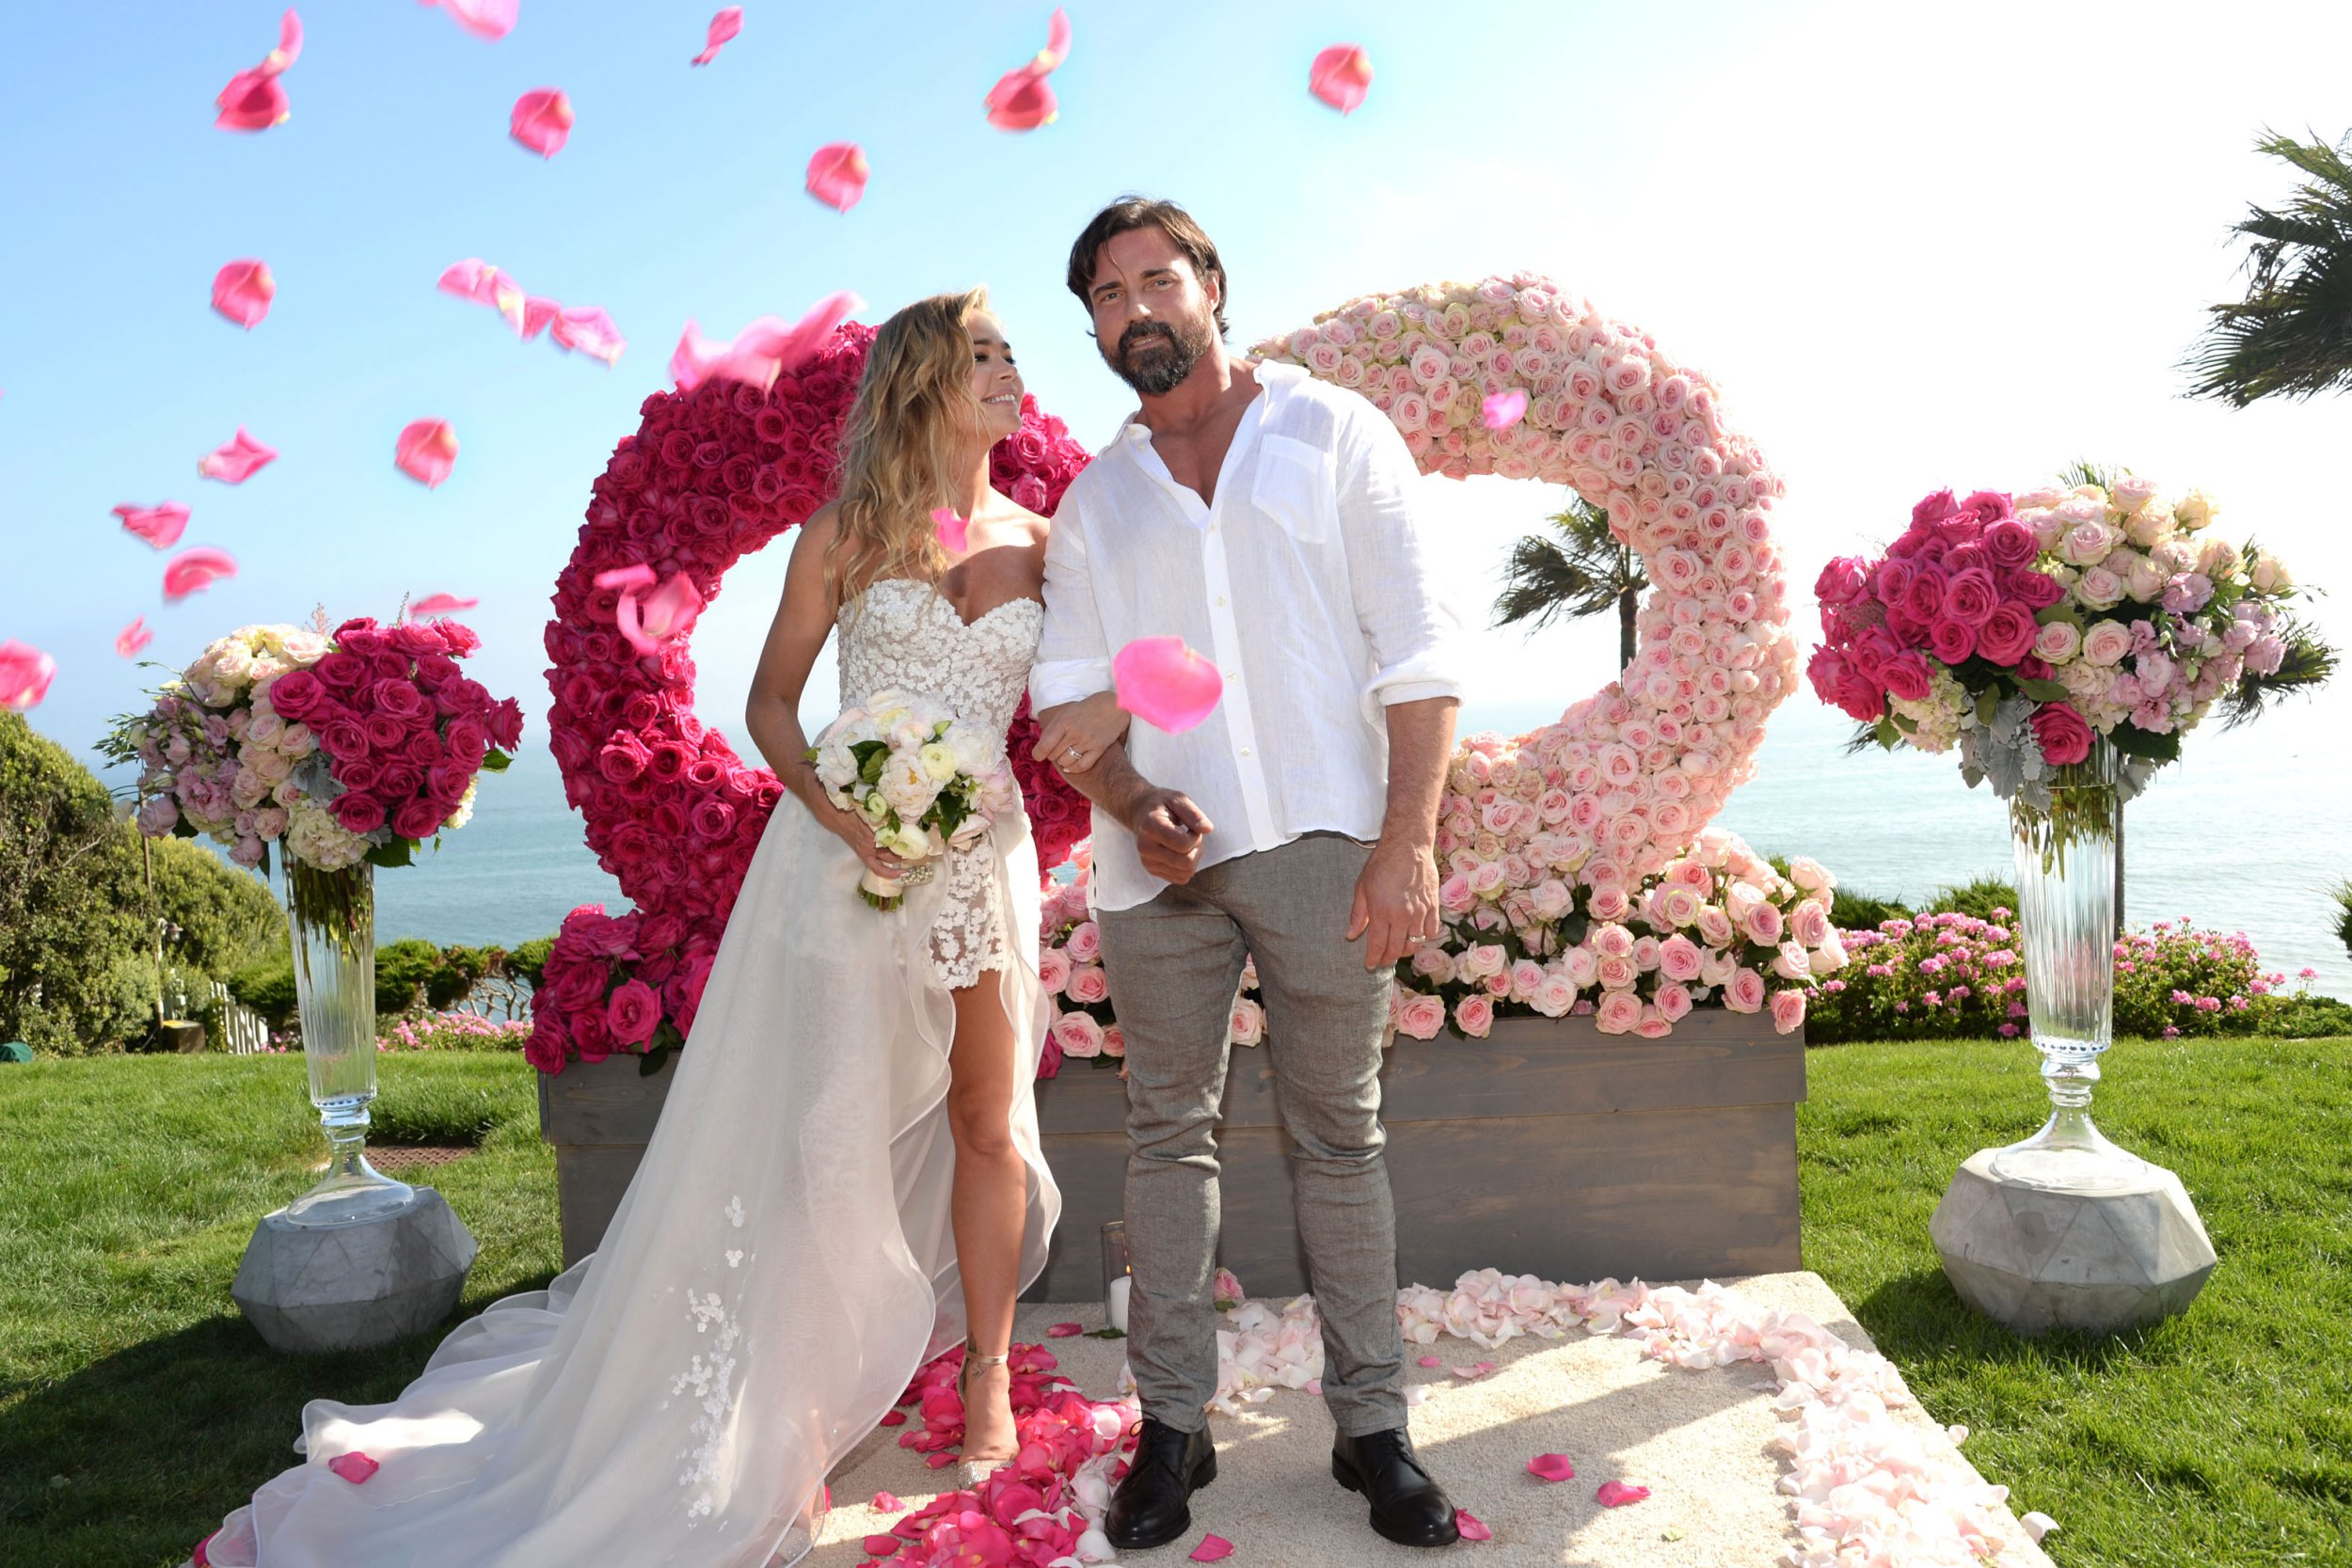 Premium Exclusive - Malibu, CA - 09/08/2018 - Denise Richards married Aaron Phypers Cypress Se Cove in Malibu. Richards who looked beautiful in her Mark Zunino dress, brought together friends, family and new castmates from her Real Housewives of Beverly Hills Season 9 at her very un-traditional wedding and reception. To quote Denise `I am so happy to officially be married to the love of my life. I can`t wait for everyone to go on this incredible journey with me this season on `The Real Housewives of Beverly Hills.` It has been a wild ride so far!` -PICTURED: Aaron Phypers, Denise Richards -PHOTO by: Michael Simon/startraksphoto.com -MS477388 Editorial - Rights Managed Image - Please contact www.startraksphoto.com for licensing fee Startraks Photo Startraks Photo New York, NY For licensing please call 212-414-9464 or email sales@startraksphoto.com Image may not be published in any way that is or might be deemed defamatory, libelous, pornographic, or obscene. Please consult our sales department for any clarification or question you may have Startraks Photo reserves the right to pursue unauthorized users of this image. If you violate our intellectual property you may be liable for actual damages, loss of income, and profits you derive from the use of this image, and where appropriate, the cost of collection and/or statutory damages.